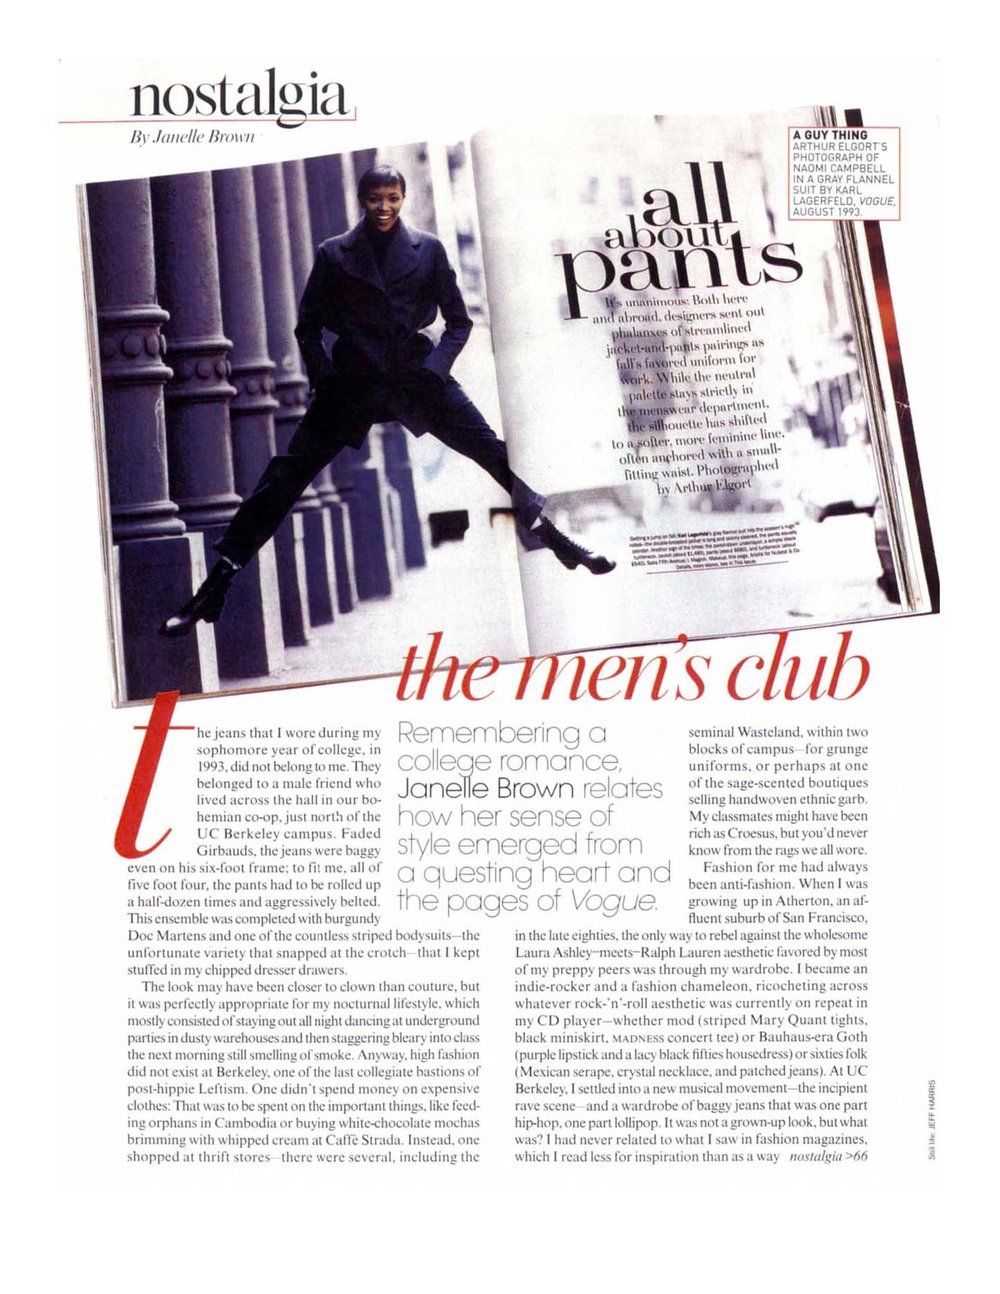 The Men's Club Remembering how a college romance inspired a sense of style.